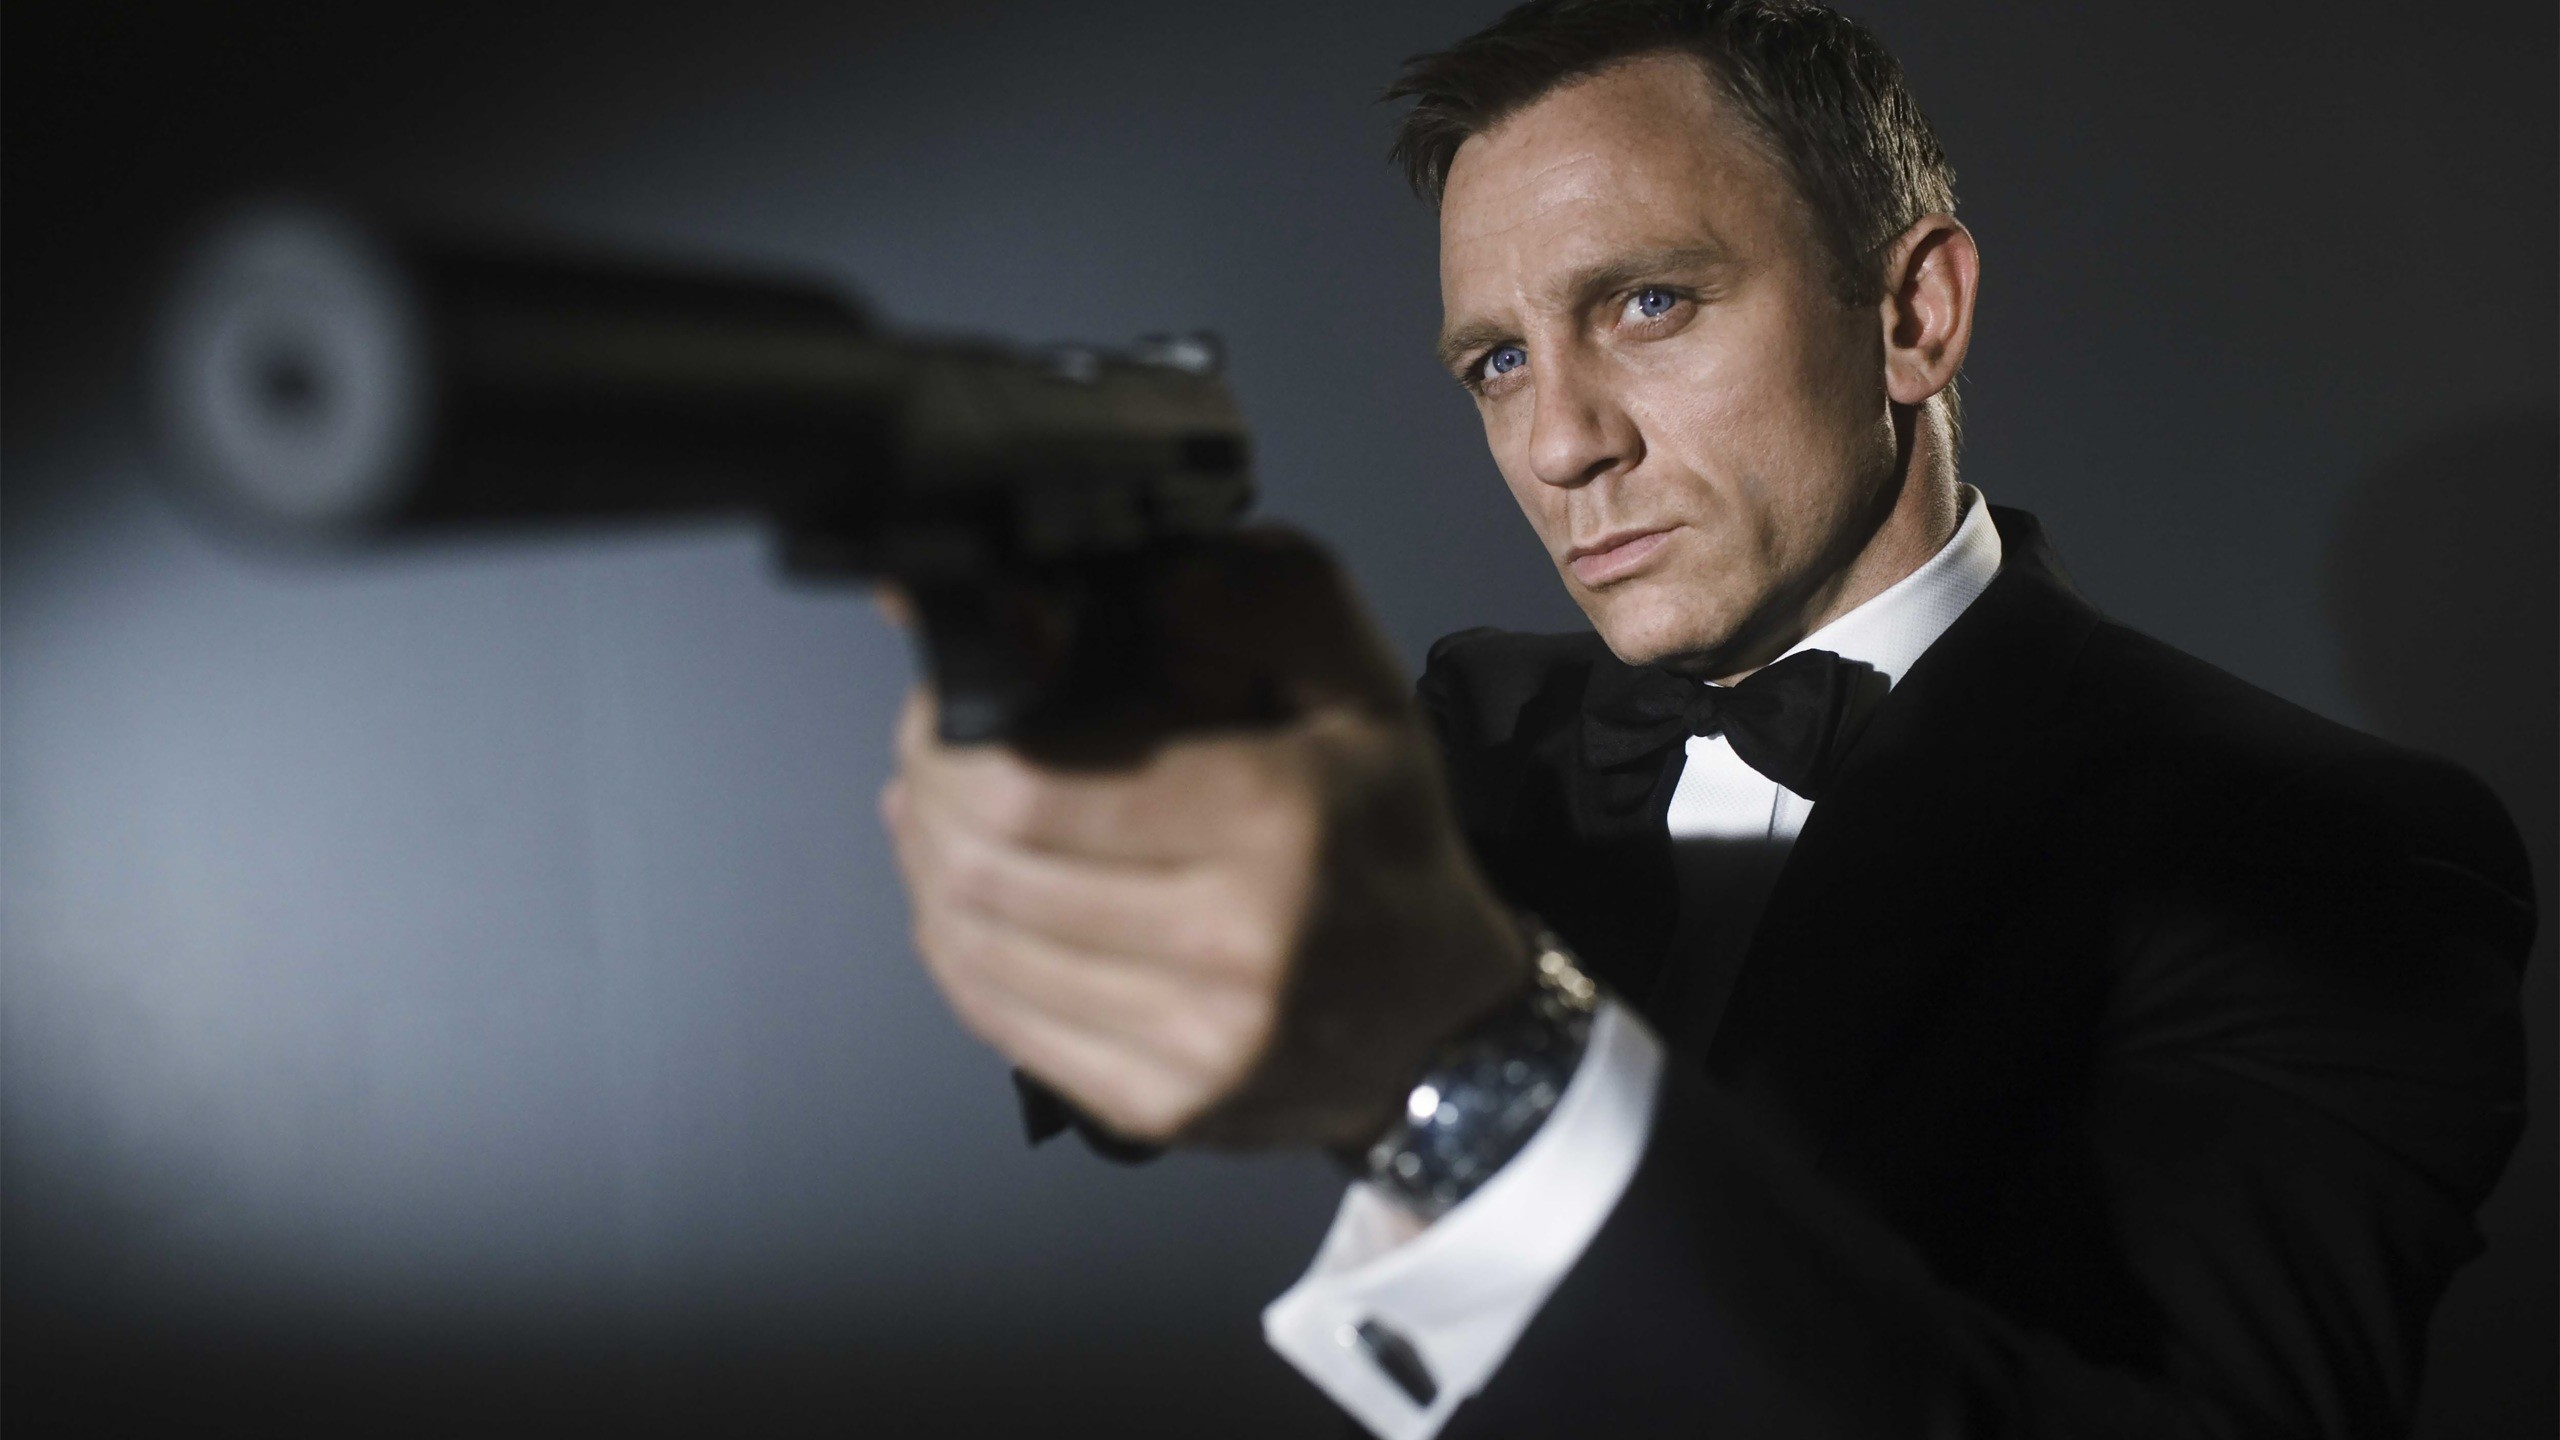 2560x1440 HD Wallpaper | Background Image ID:278626.  Movie Casino Royale